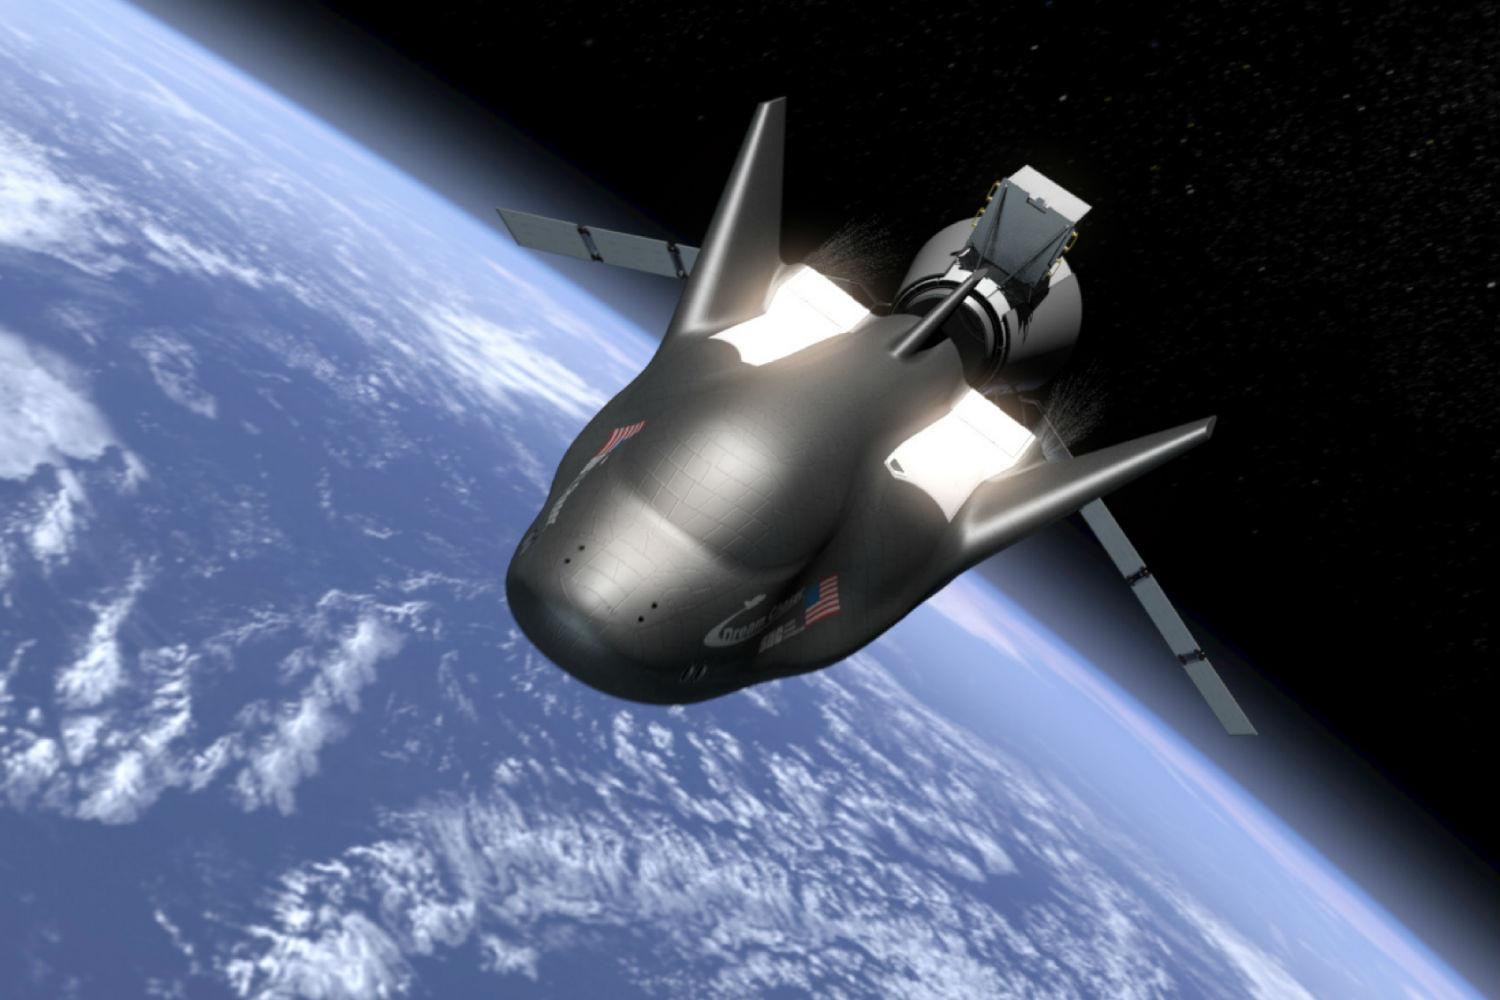 Developing nations may get a shot at space, thanks to the UN's planned spaceplane